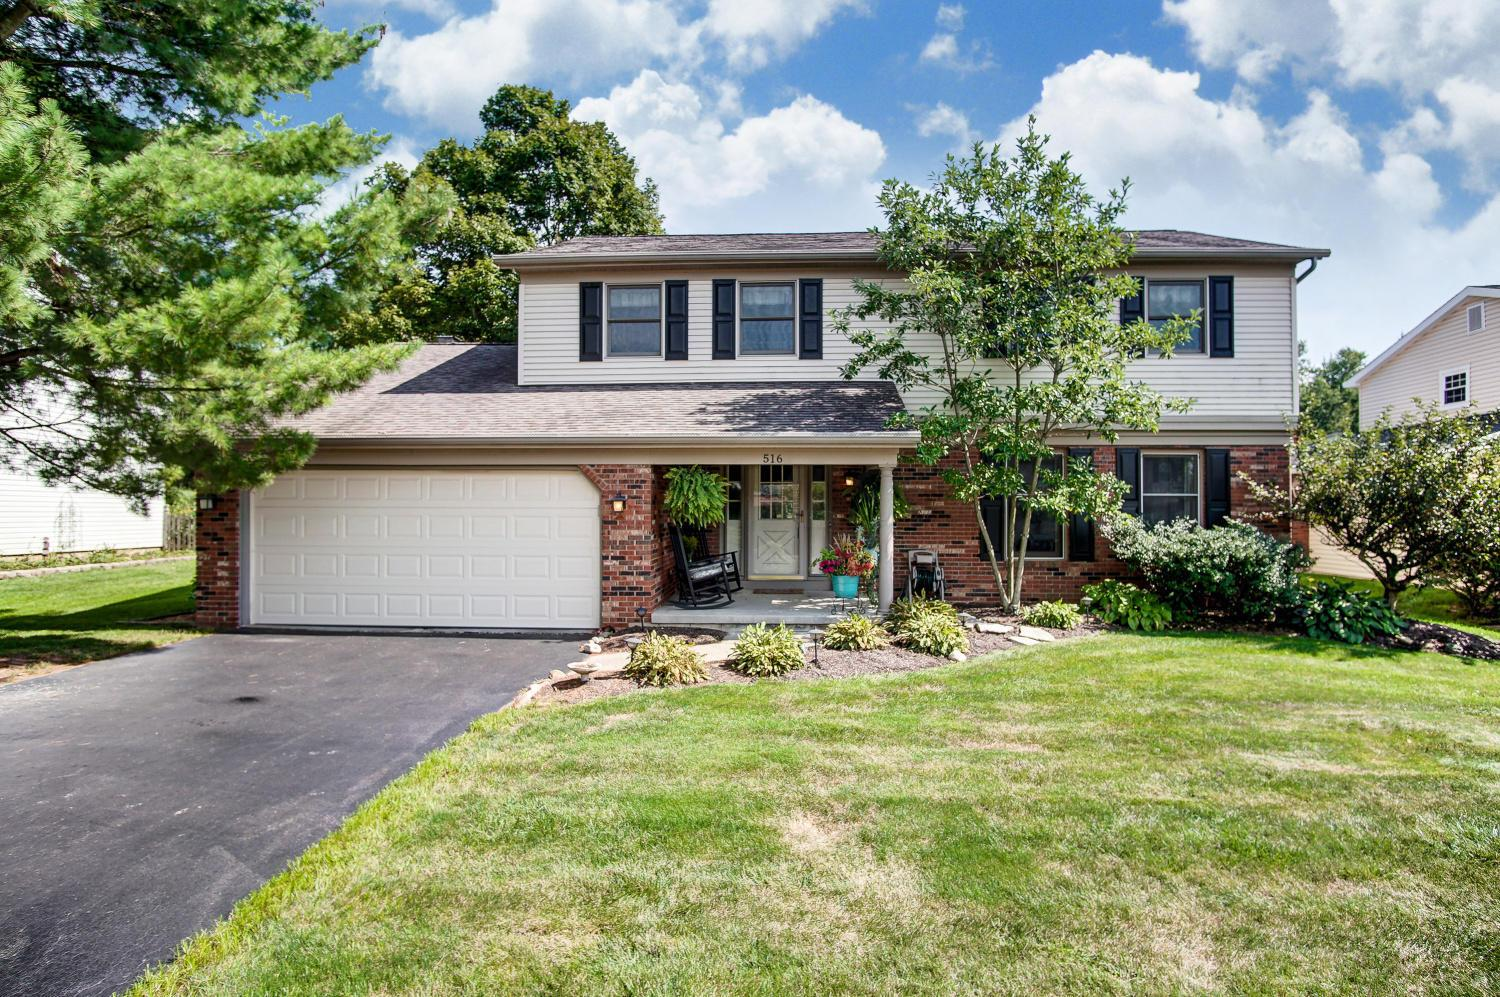 Photo of 516 Stedway Court, Gahanna, OH 43230